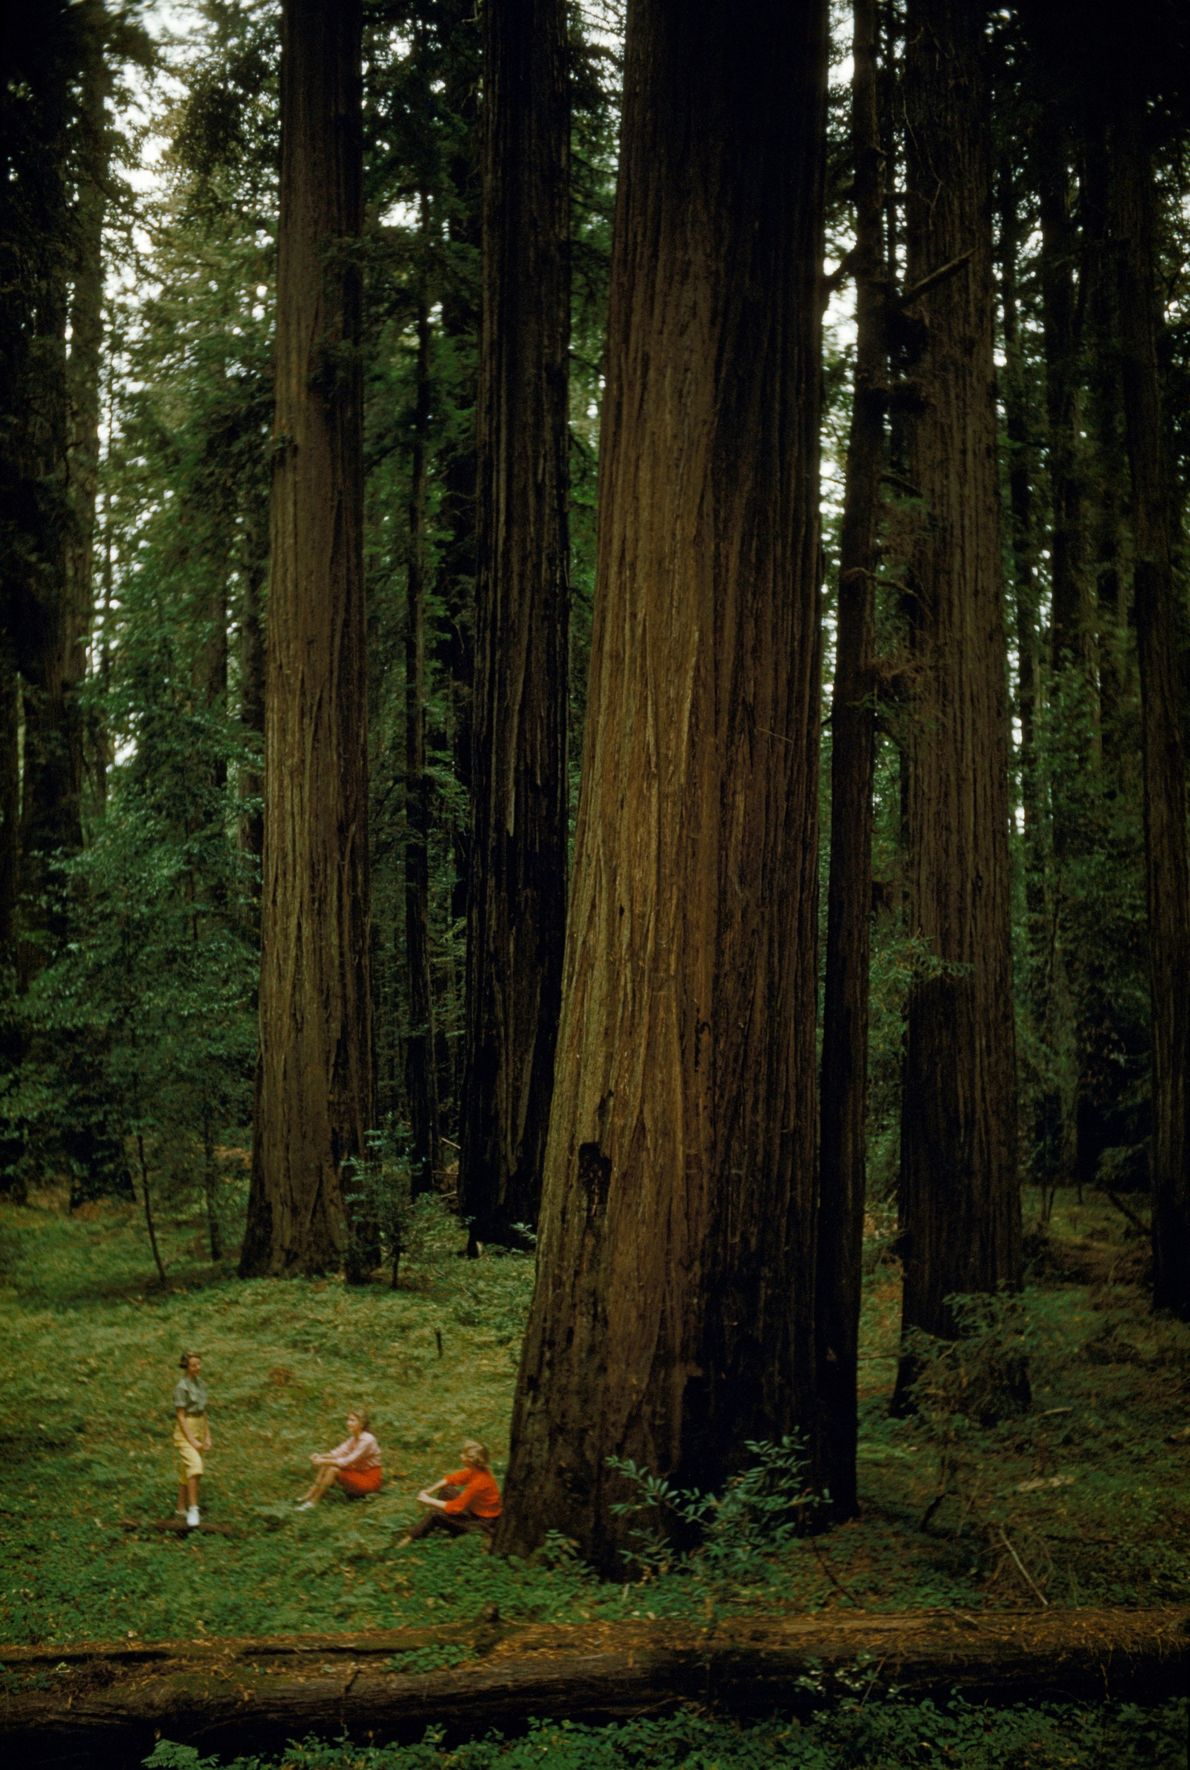 The grove of redwood trees provides a scenic place to appreciate nature.